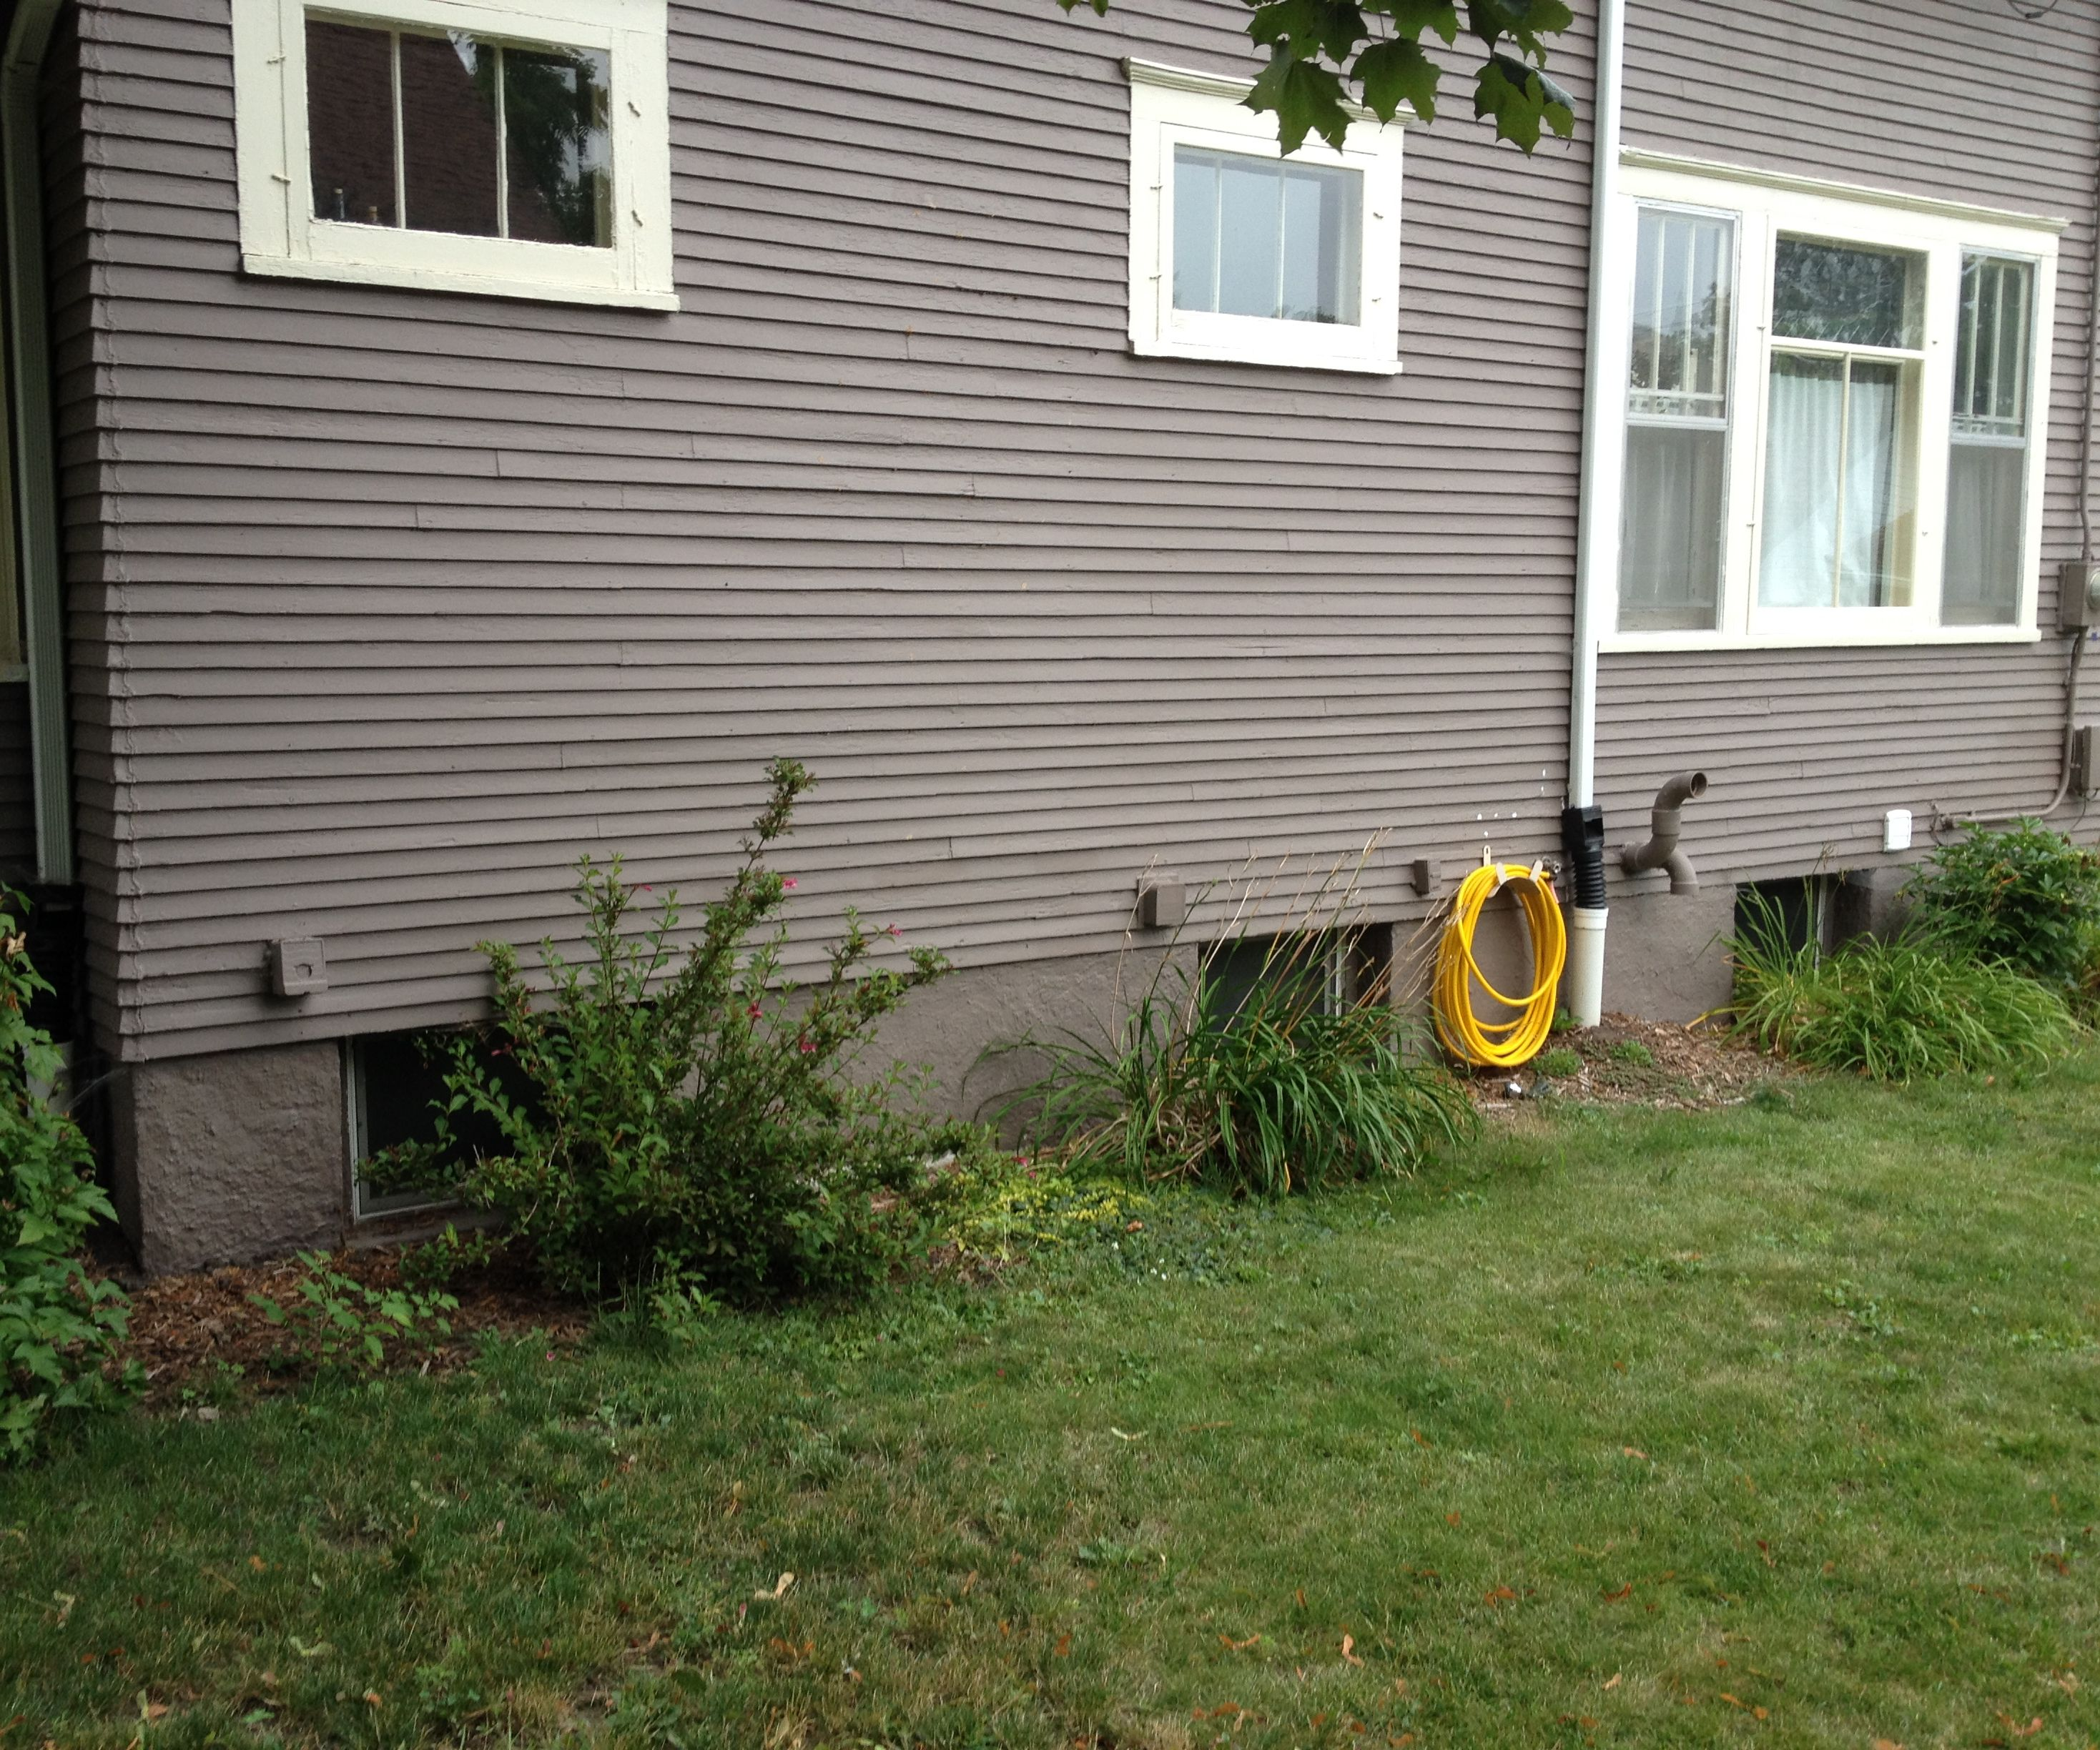 Bury Your Gutter Downspouts: 7 Steps (with Pictures)